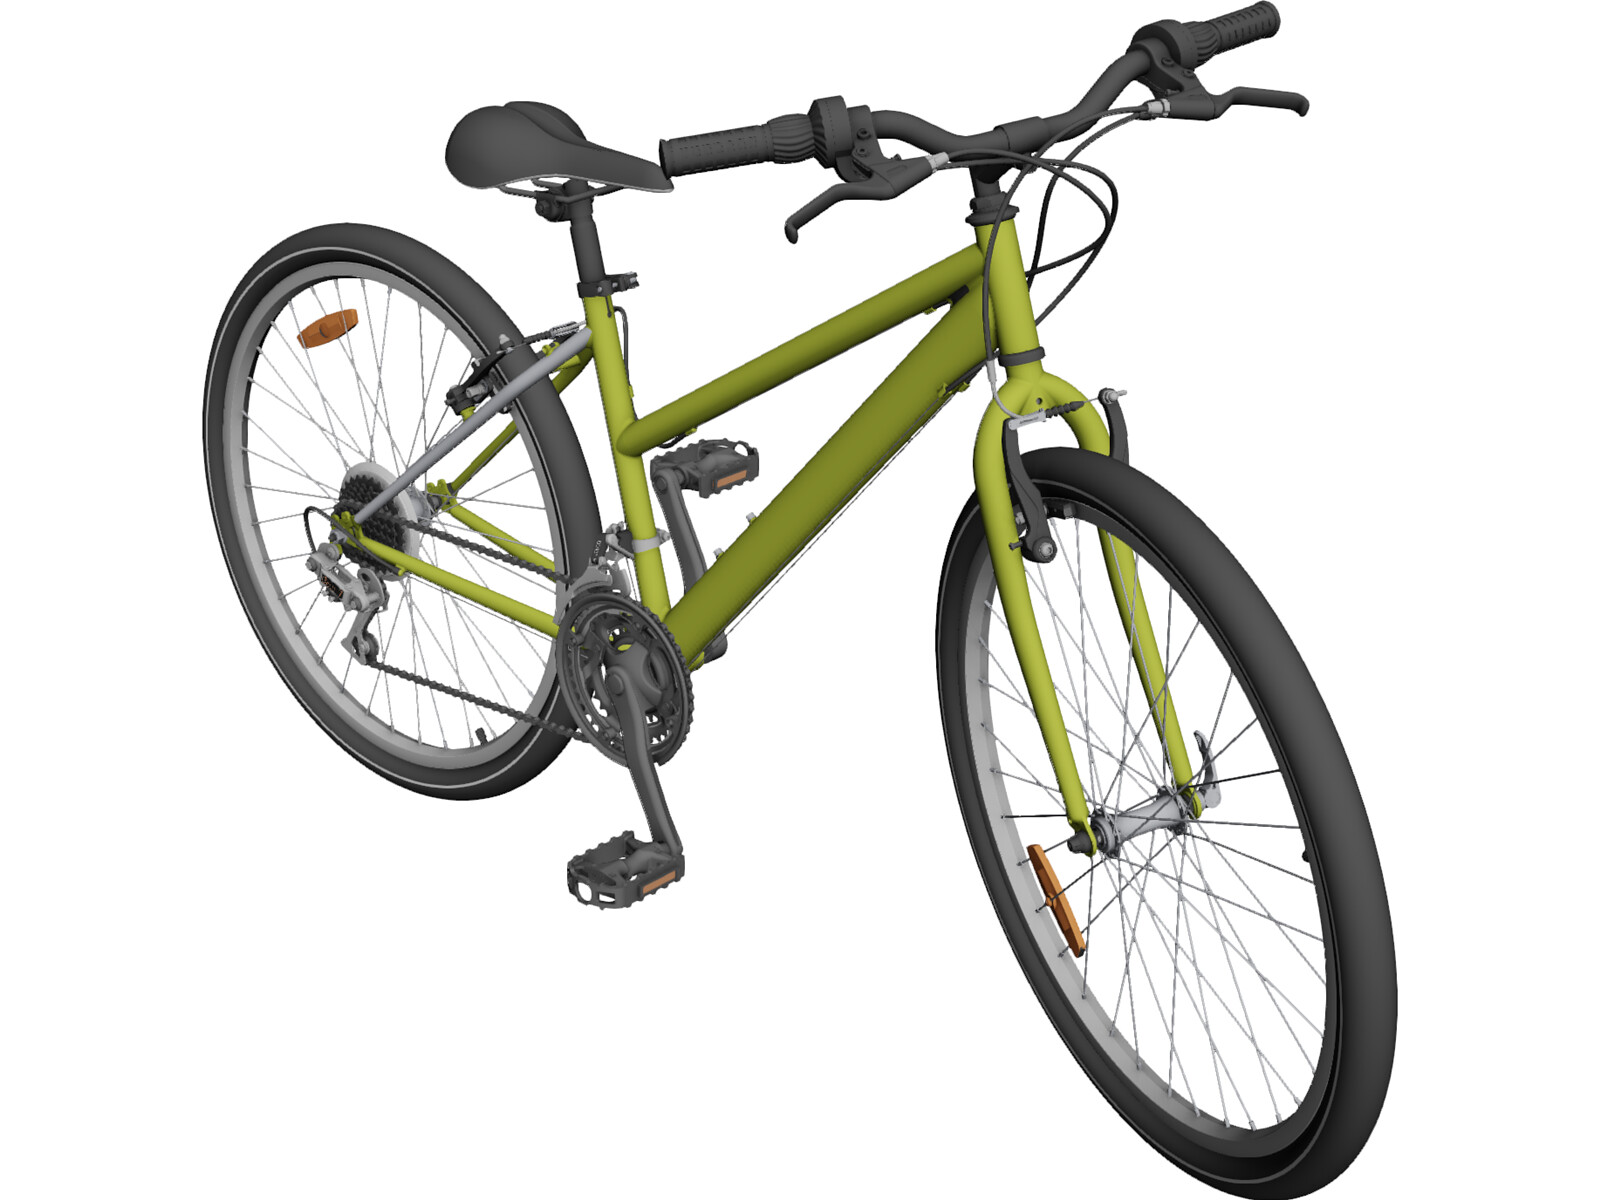 Bicycle 3D CAD Model